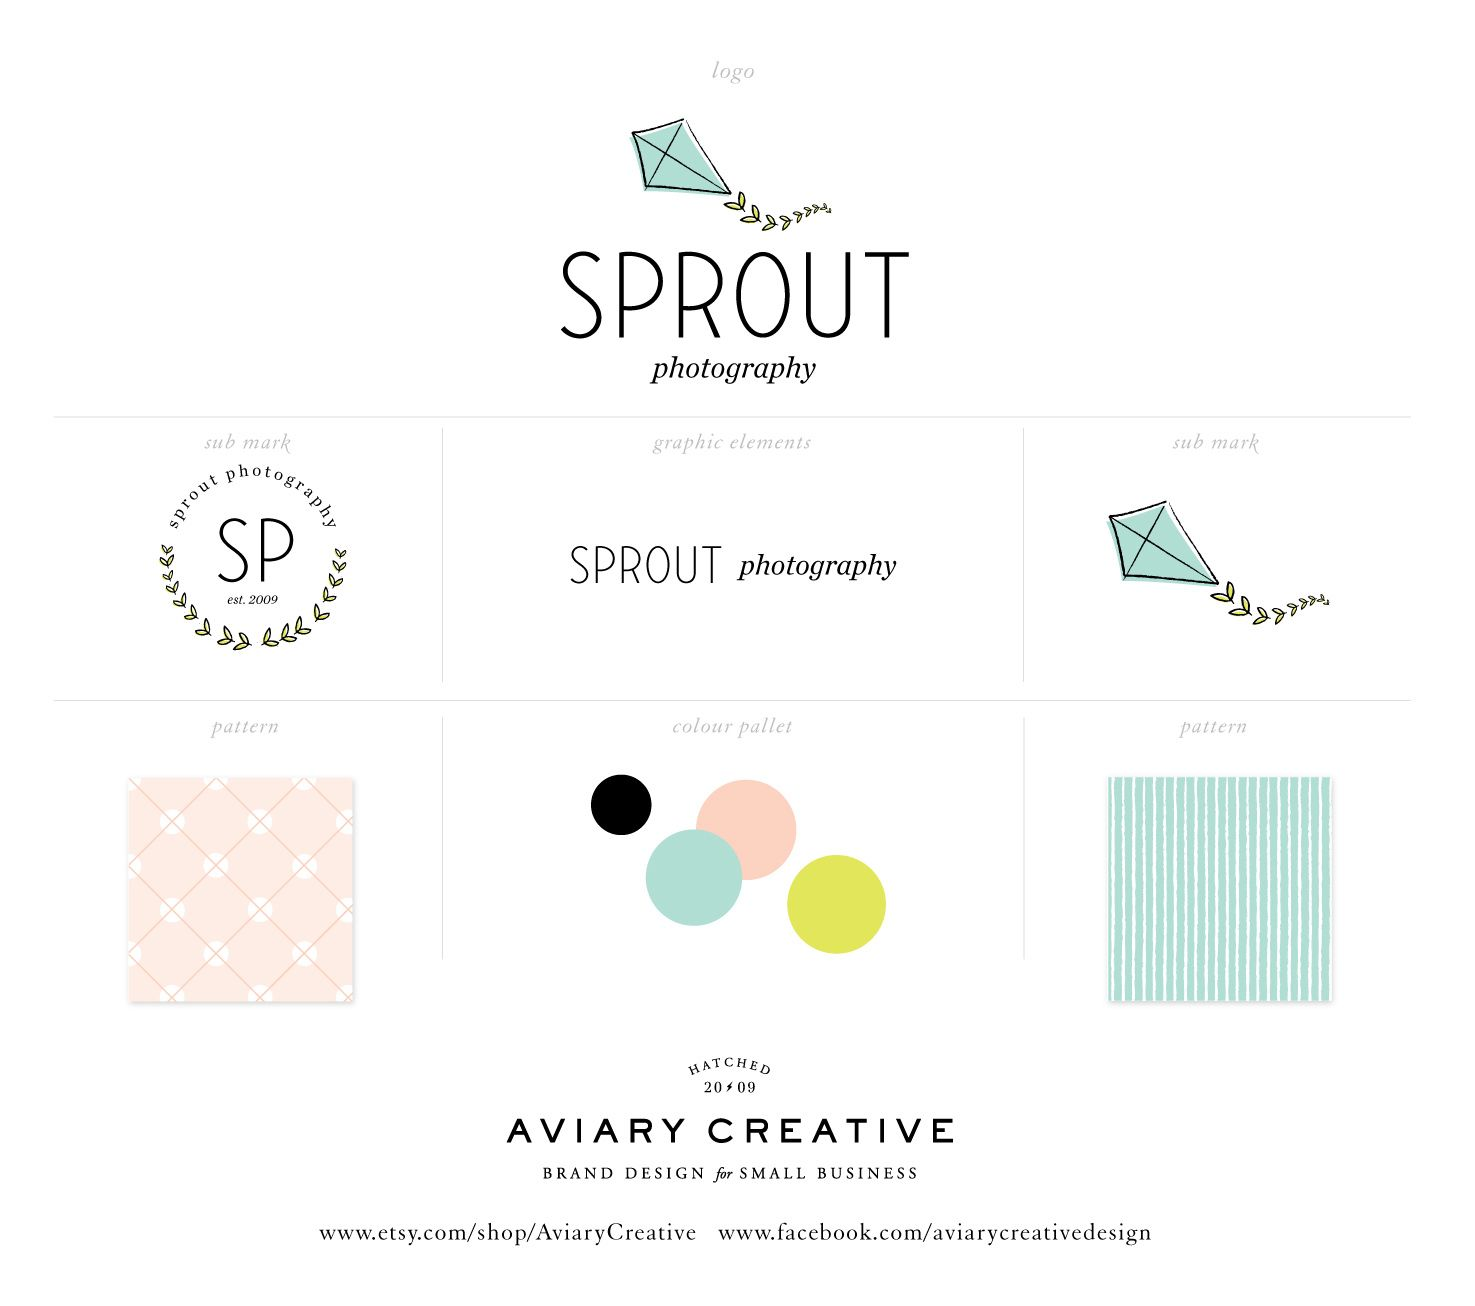 sprout photography brand board www etsy com shop aviarycreative www rh pinterest com Website Style Guide Example Website Style Guide Example